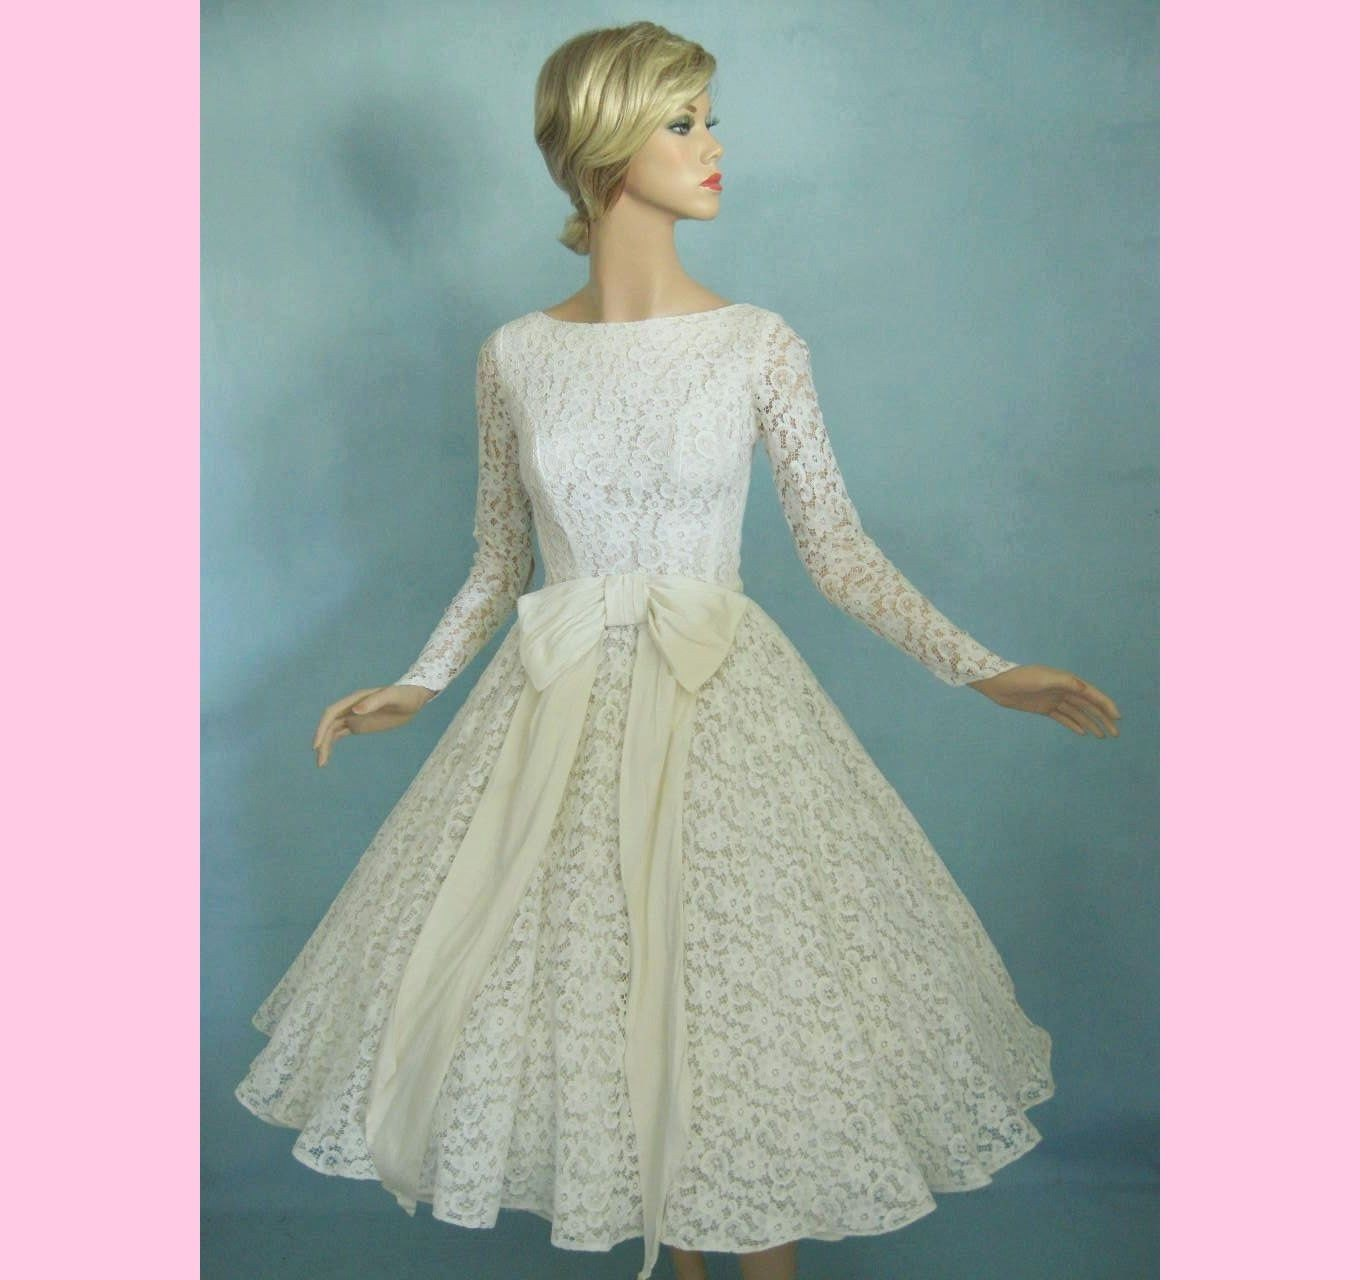 Vintage Style Lace Wedding Dresses: CIRCLE SKIRT 50s Lace Vintage Wedding Prom Dress By